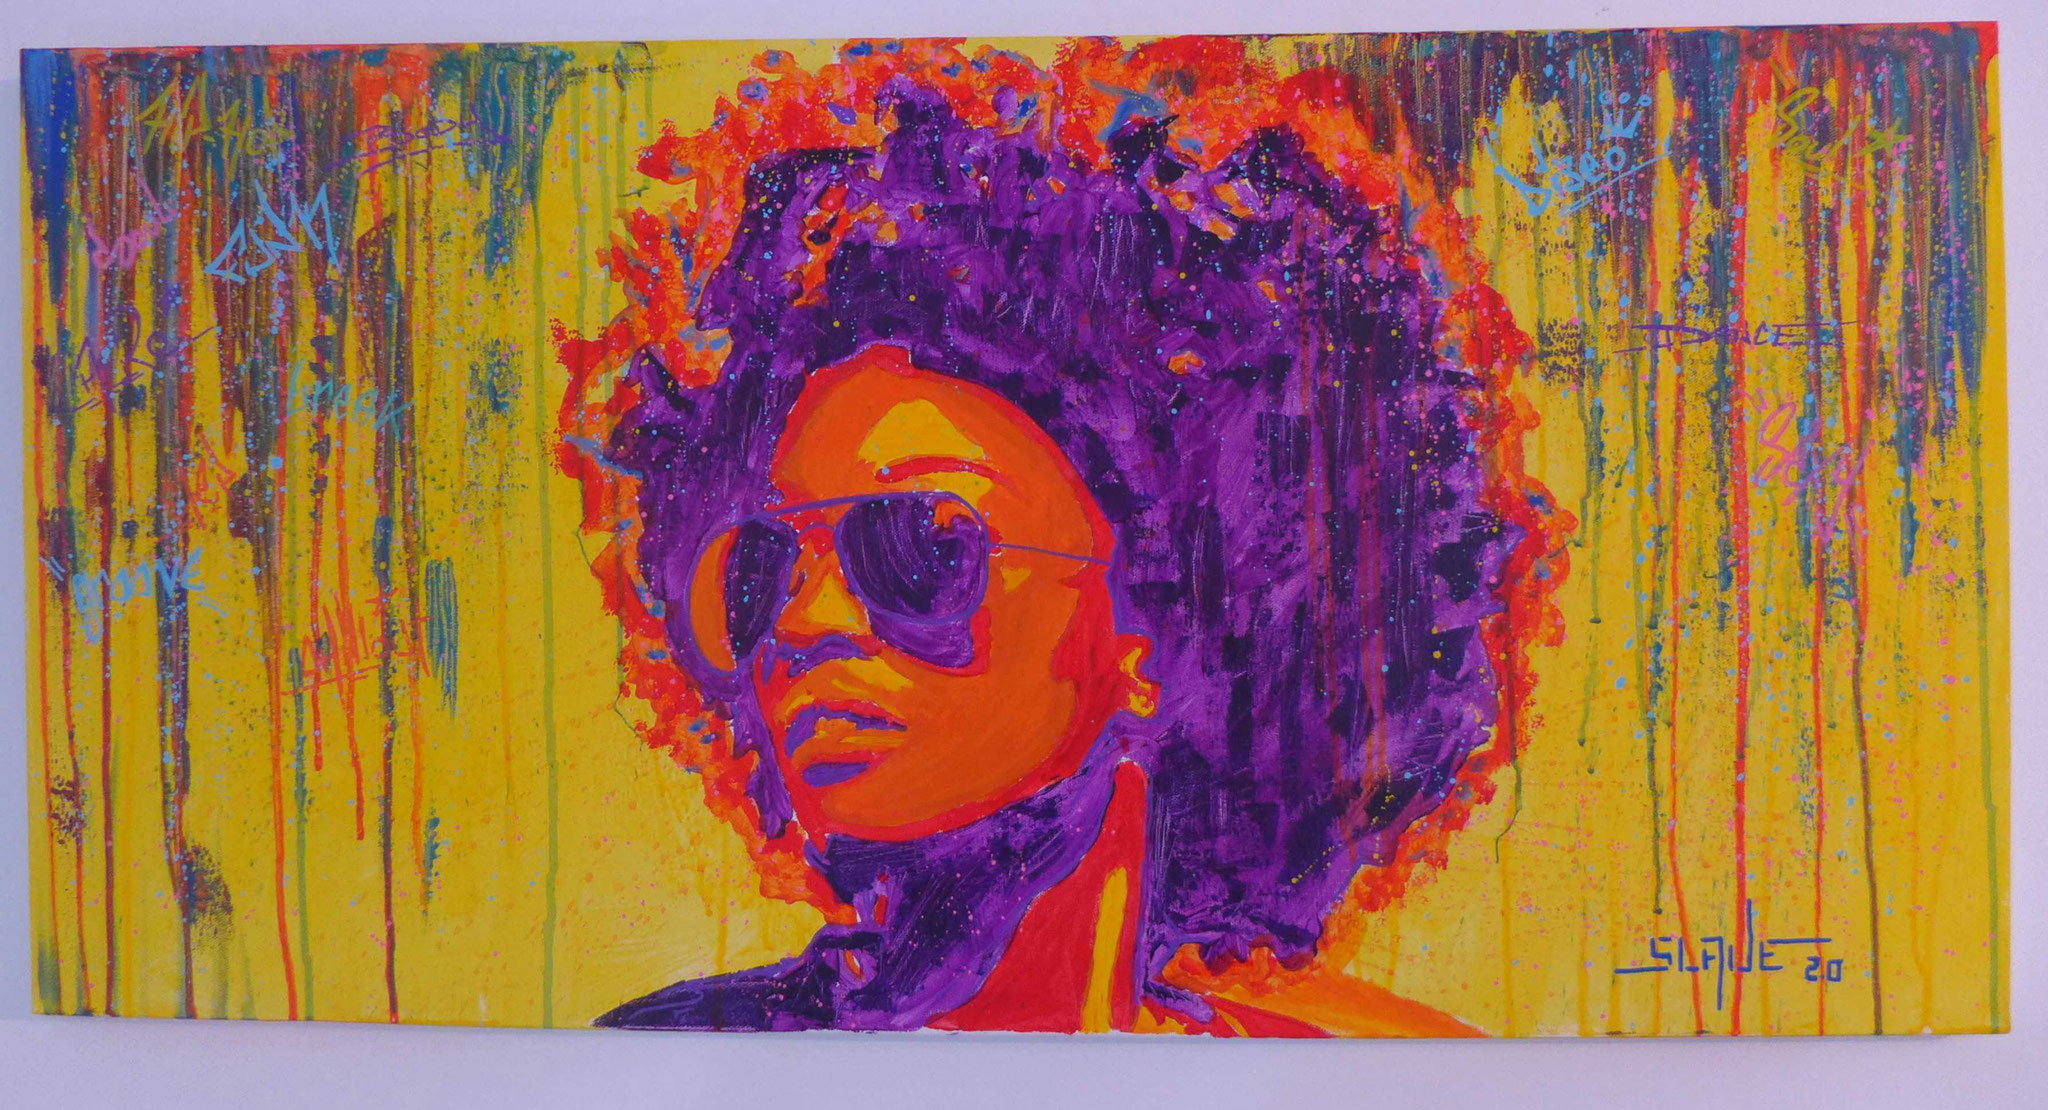 Funky Woman colorful street art par Slave 2.0